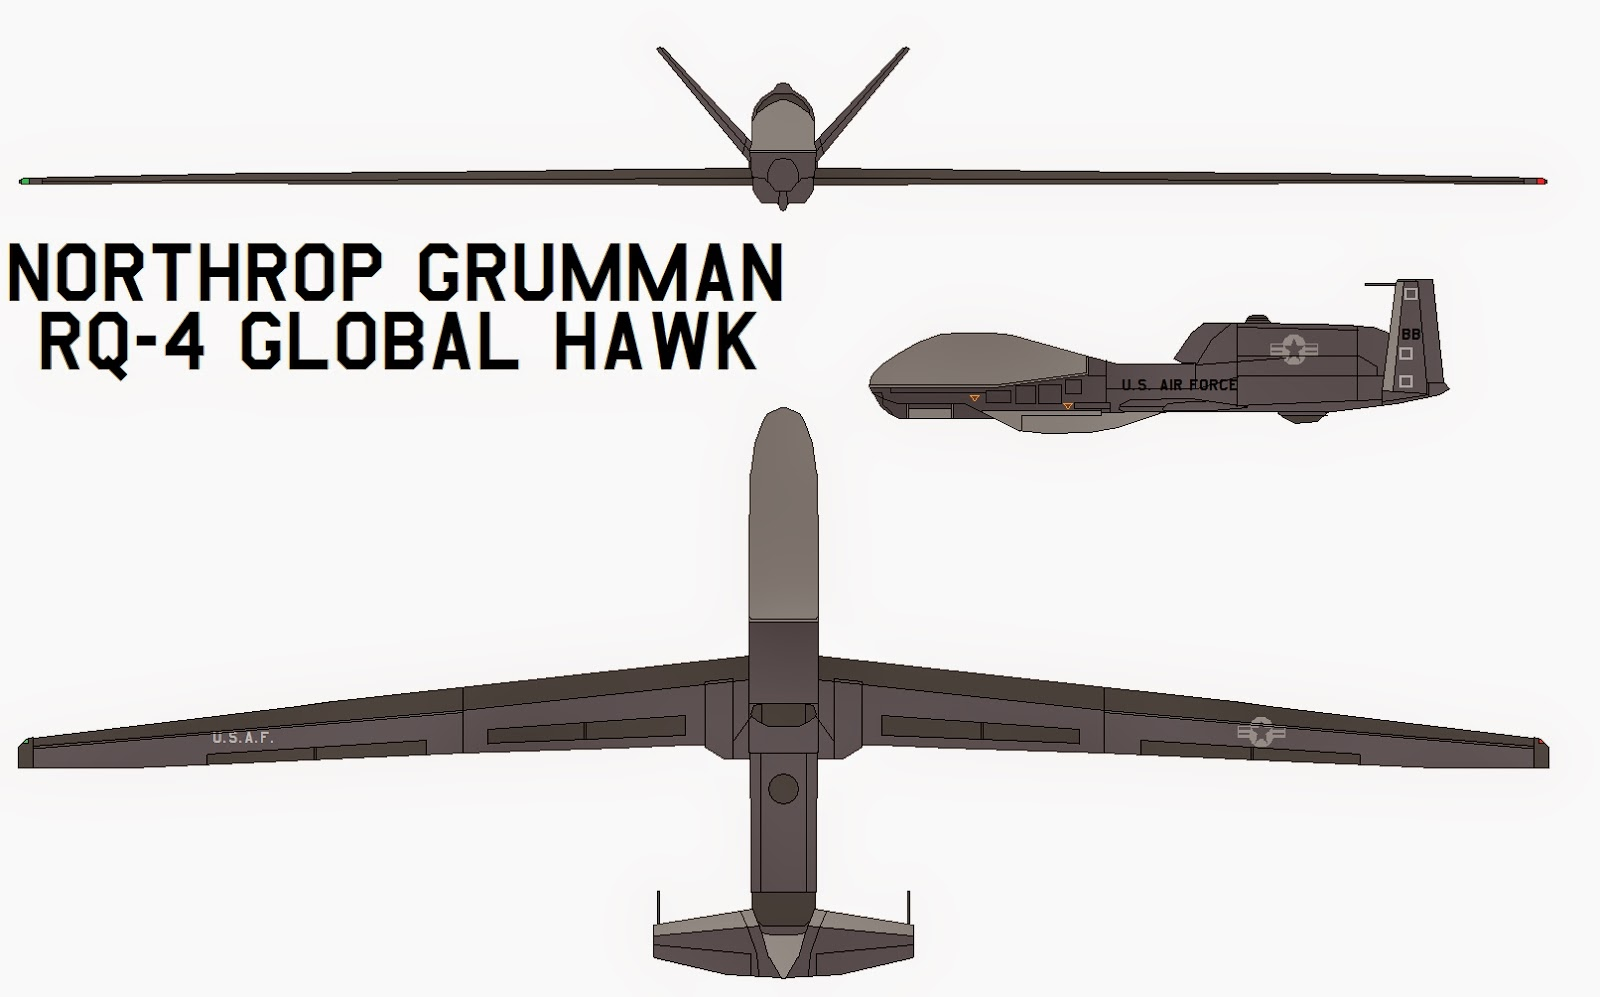 unmanned aerial vehicle thesis Naval postgraduate school monterey, california thesis approved for public release distribution is unlimited unmanned aerial vehicle use in army brigade.